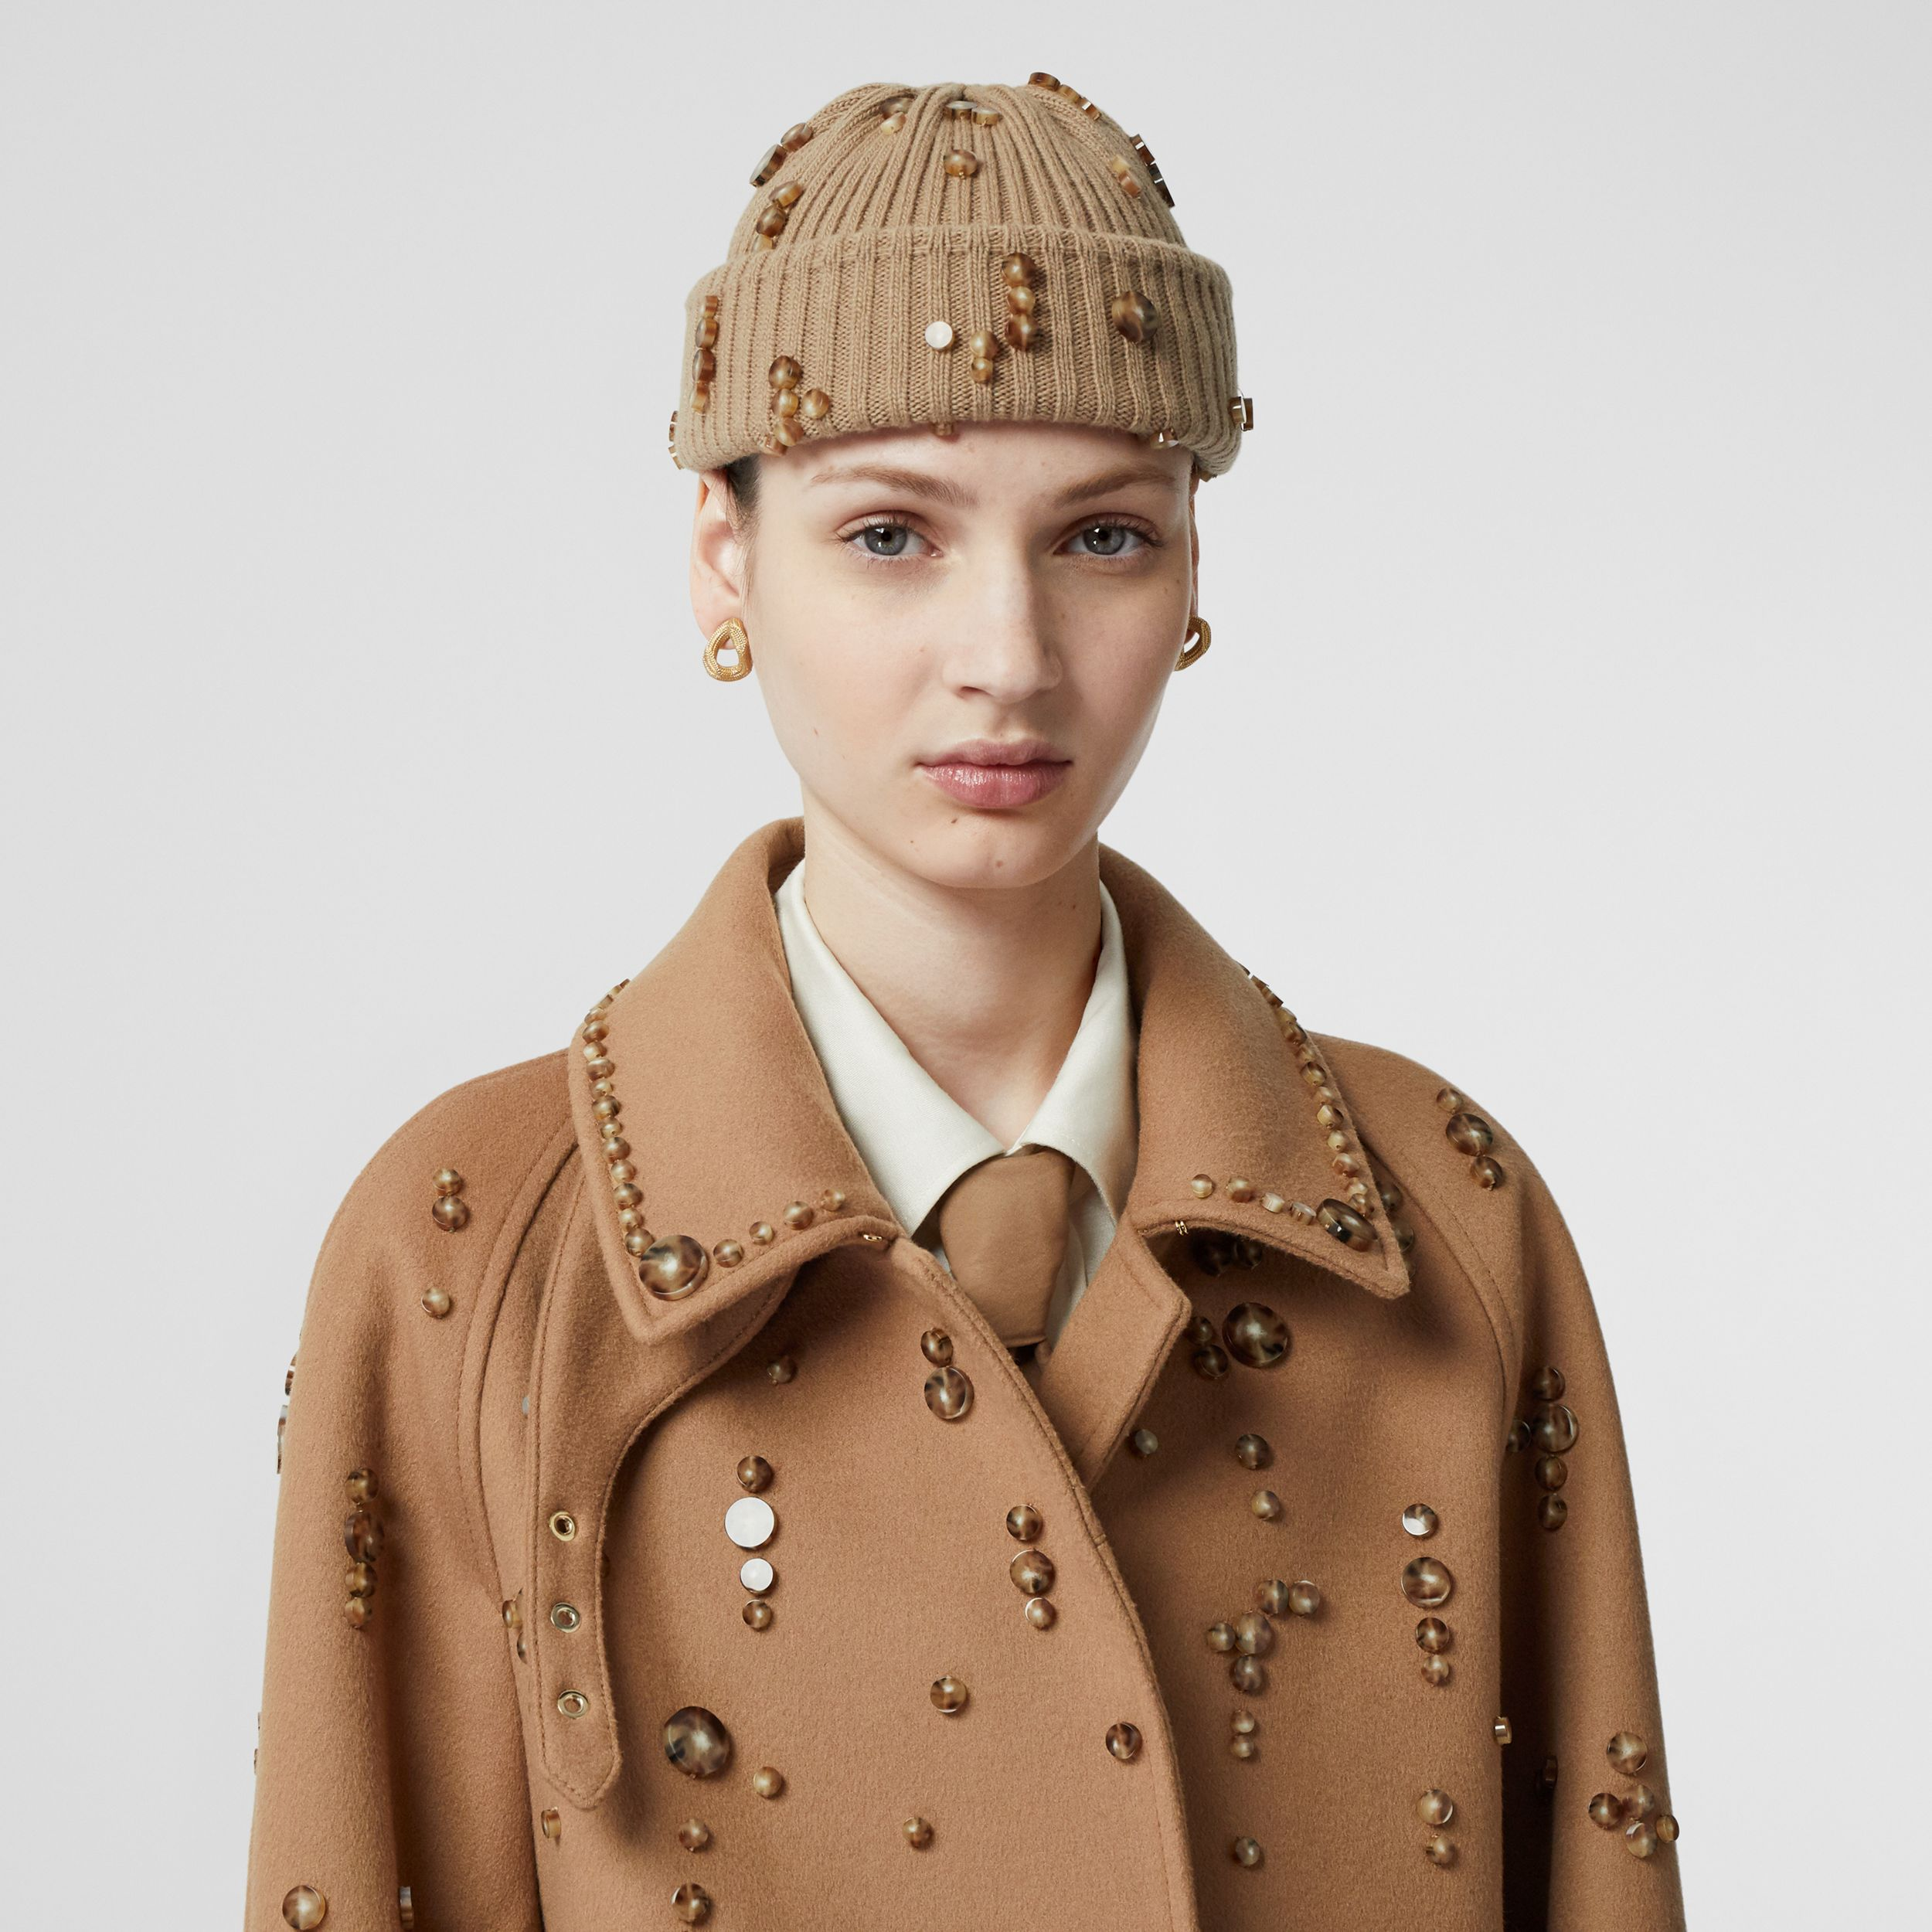 Embellished Wool Cashmere Car Coat in Camel - Women | Burberry - 2